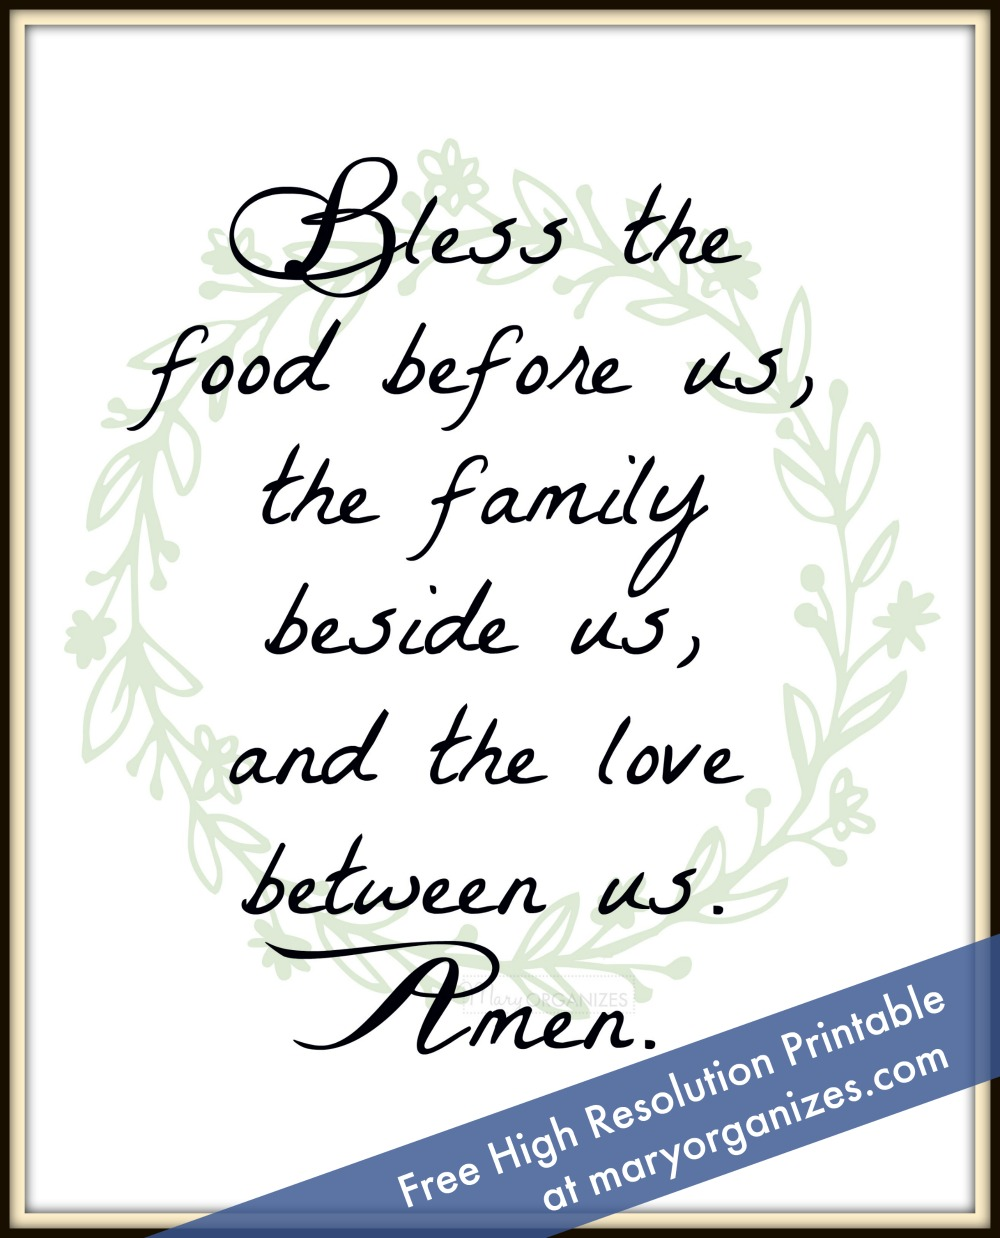 photo about Bless the Food Before Us Printable called Kitchen area 7 days - Take pleasure in Property Difficulty -